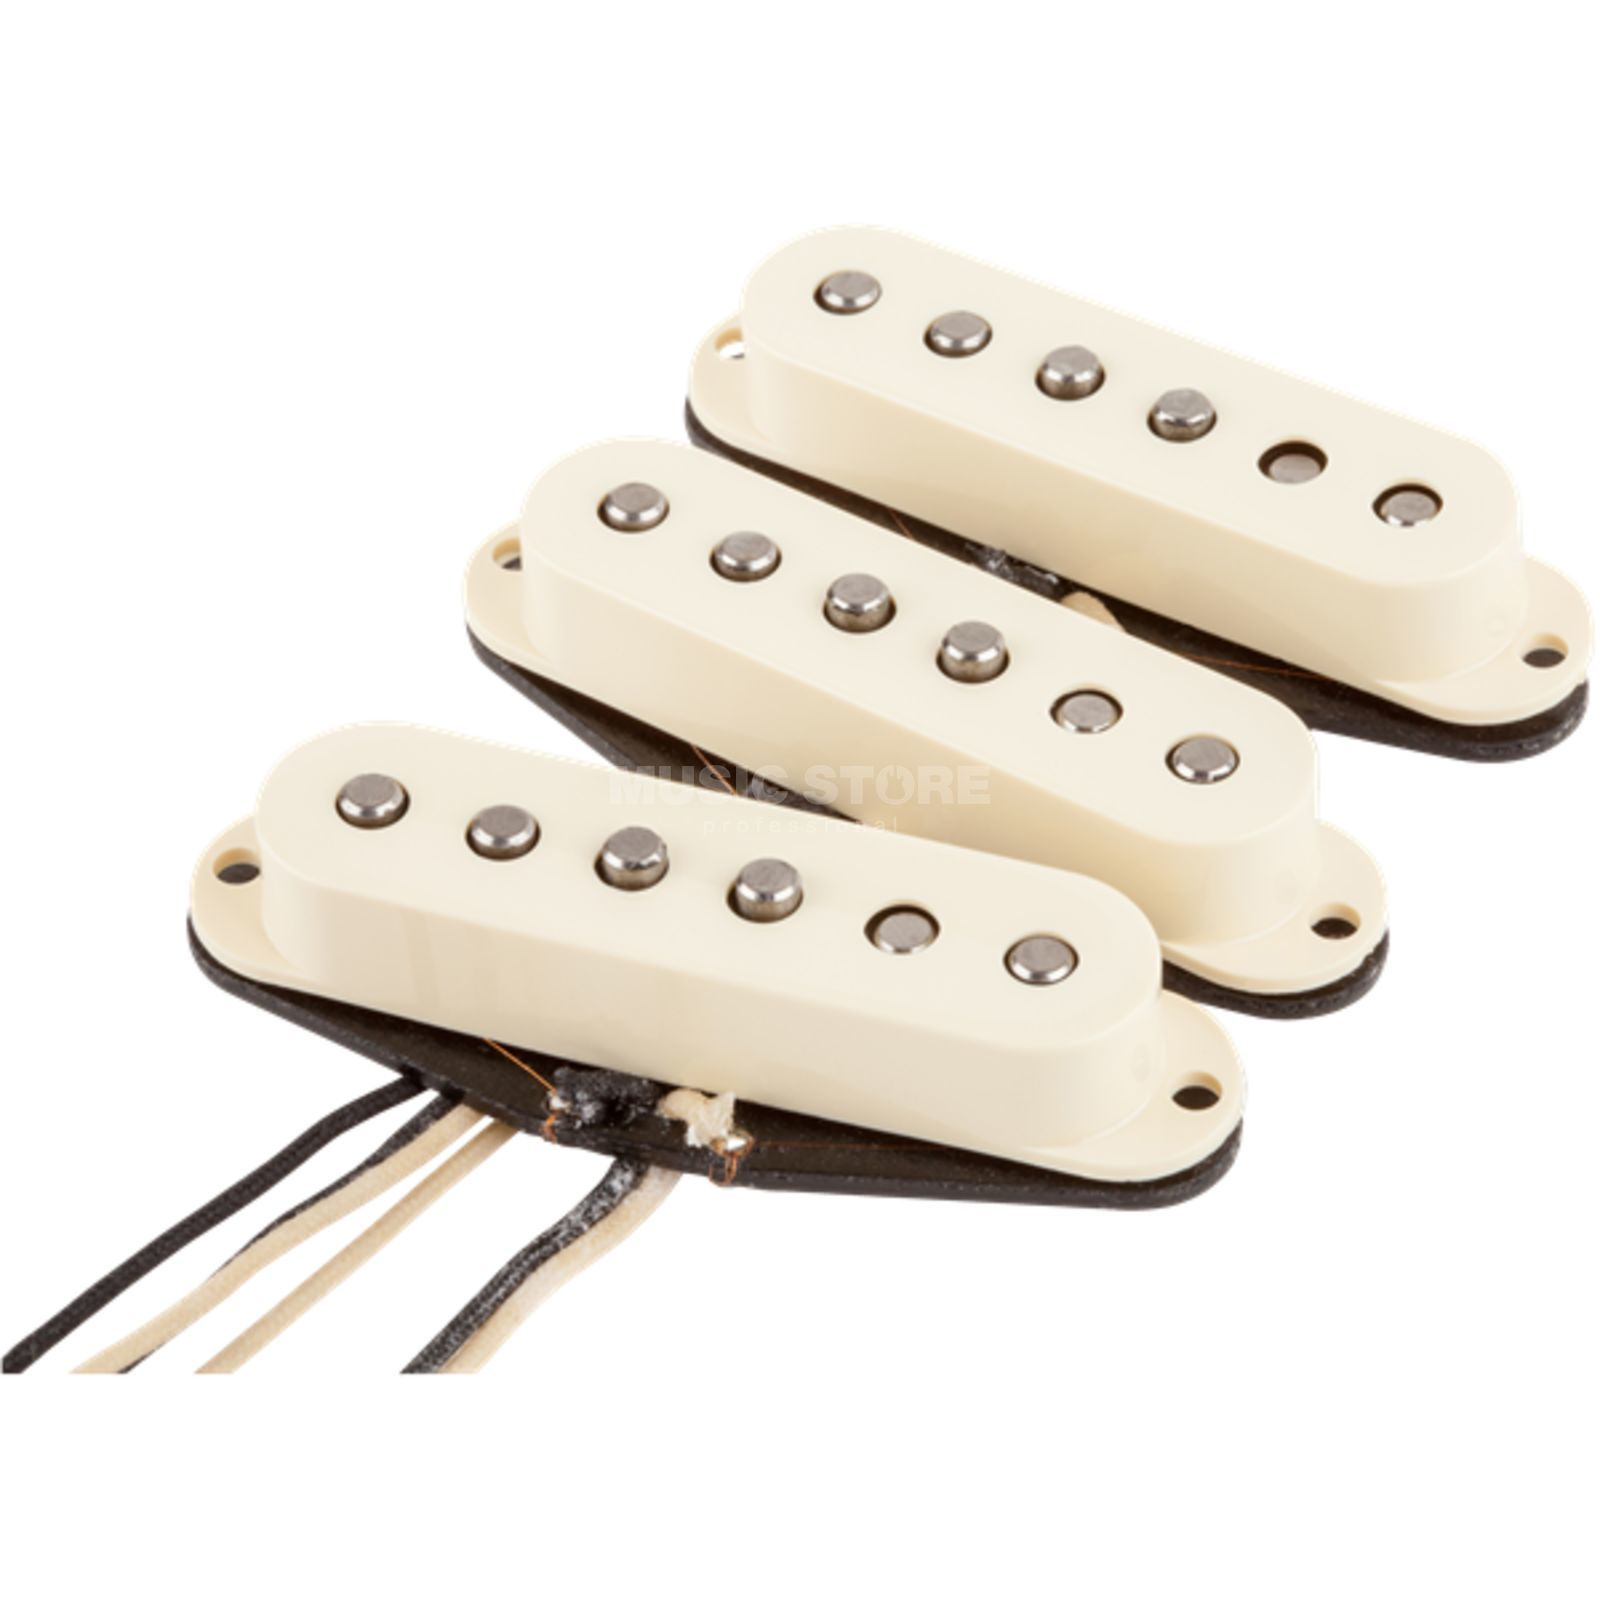 Fender 57/62 Strat PU Set (Bridge, Middle,Neck) Produktbillede